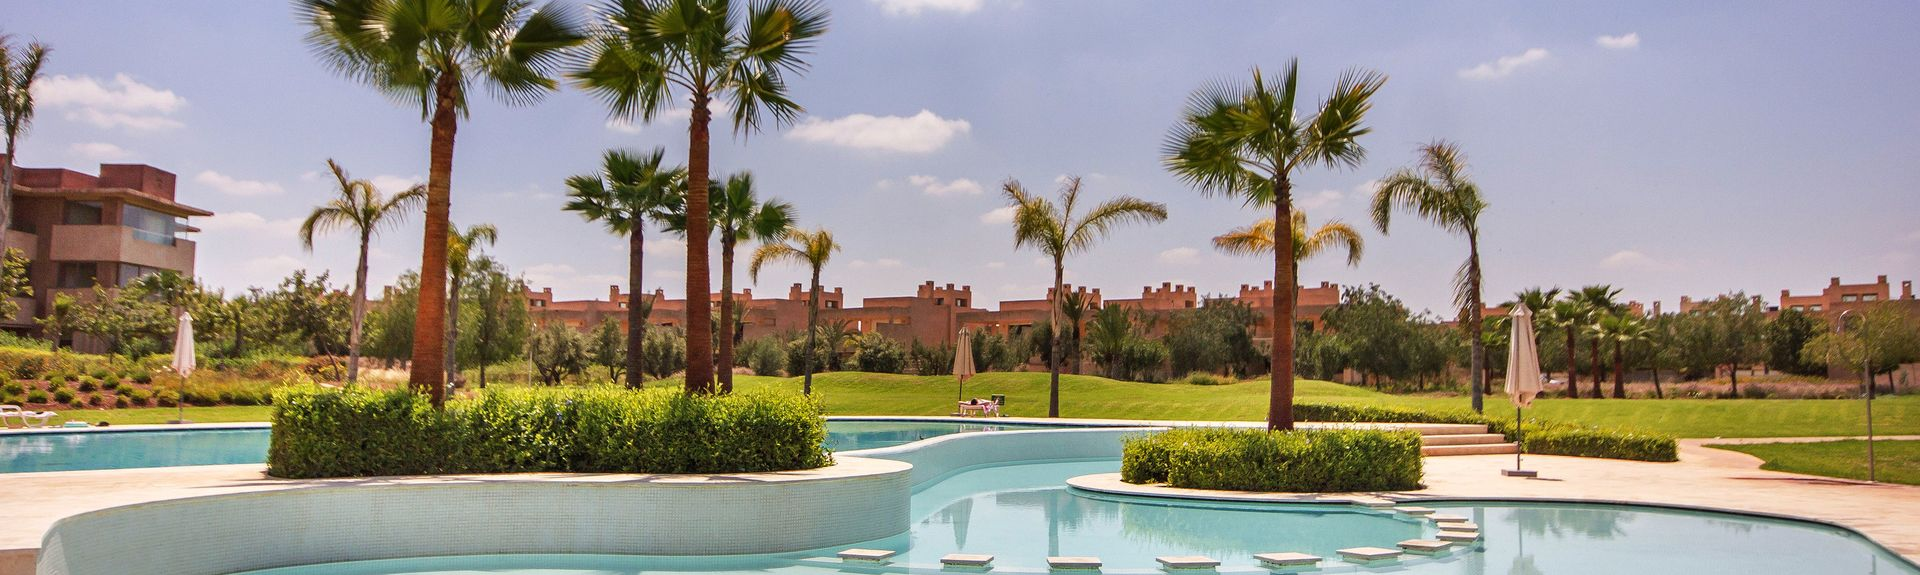 Royal Palace, Marrakech, Marrakech-Safi, Morocco